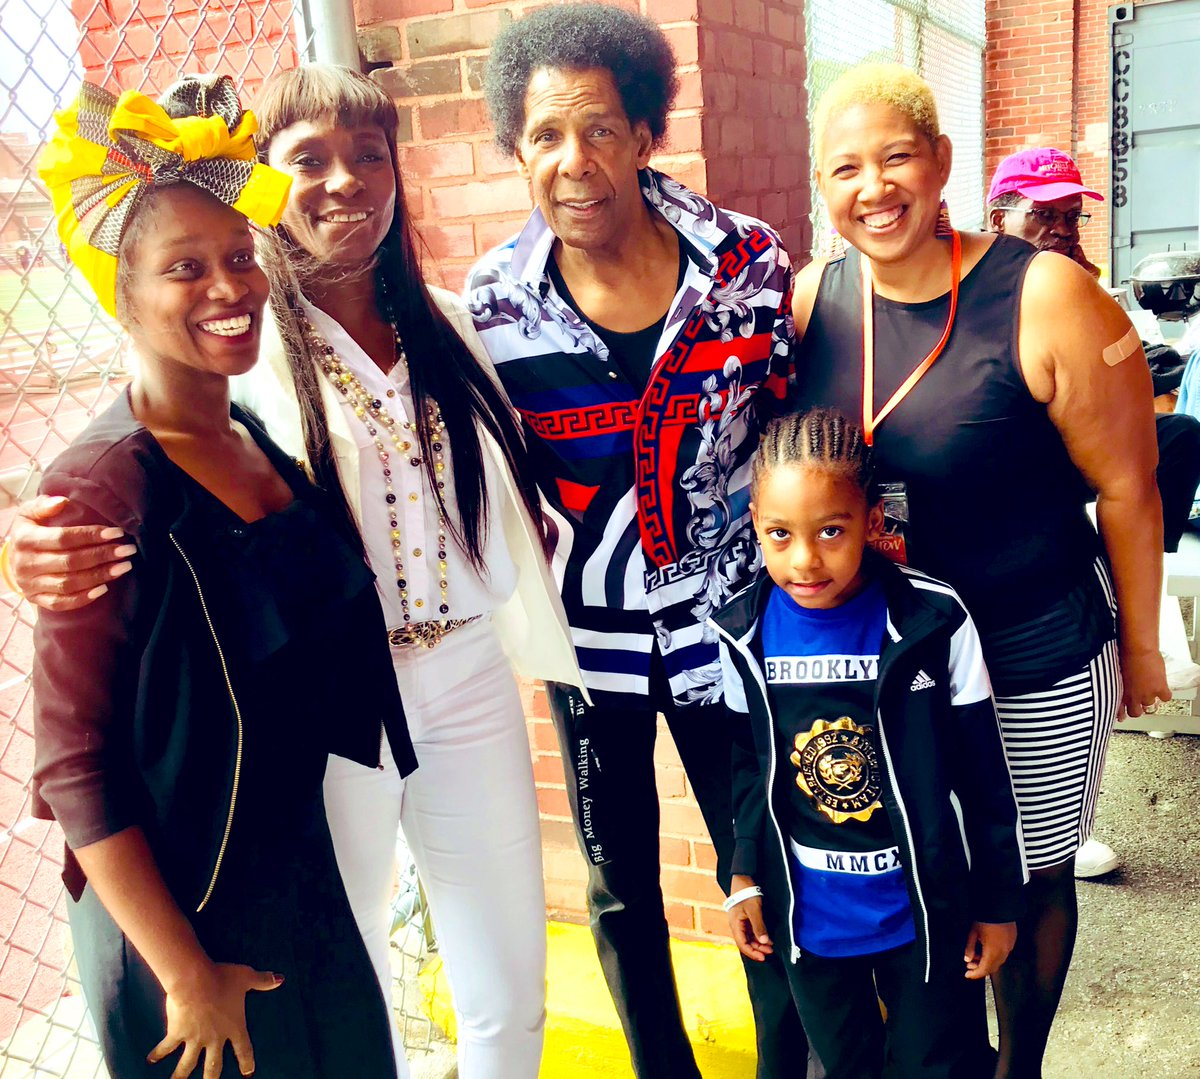 @mayorsCAU recognized #nba Hall of famer, and #Brooklyn native, the late #ConnieHawkins at a dedication ceremony with @nate_tiny @Frzy @Djbarryblends @BGHS1700 @BPEricAdams @BrooklynNets in the heart of #Bedstuy.